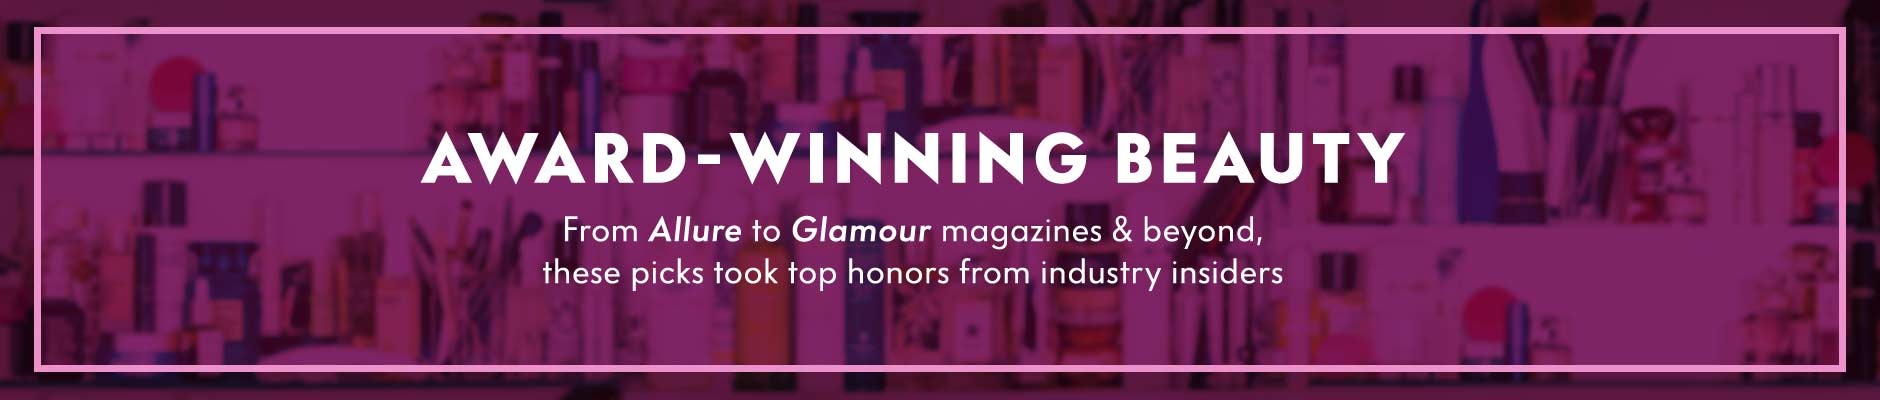 Award winning beauty from Allure to Glamour magazines & beyond, these picks took top honors from industry insiders